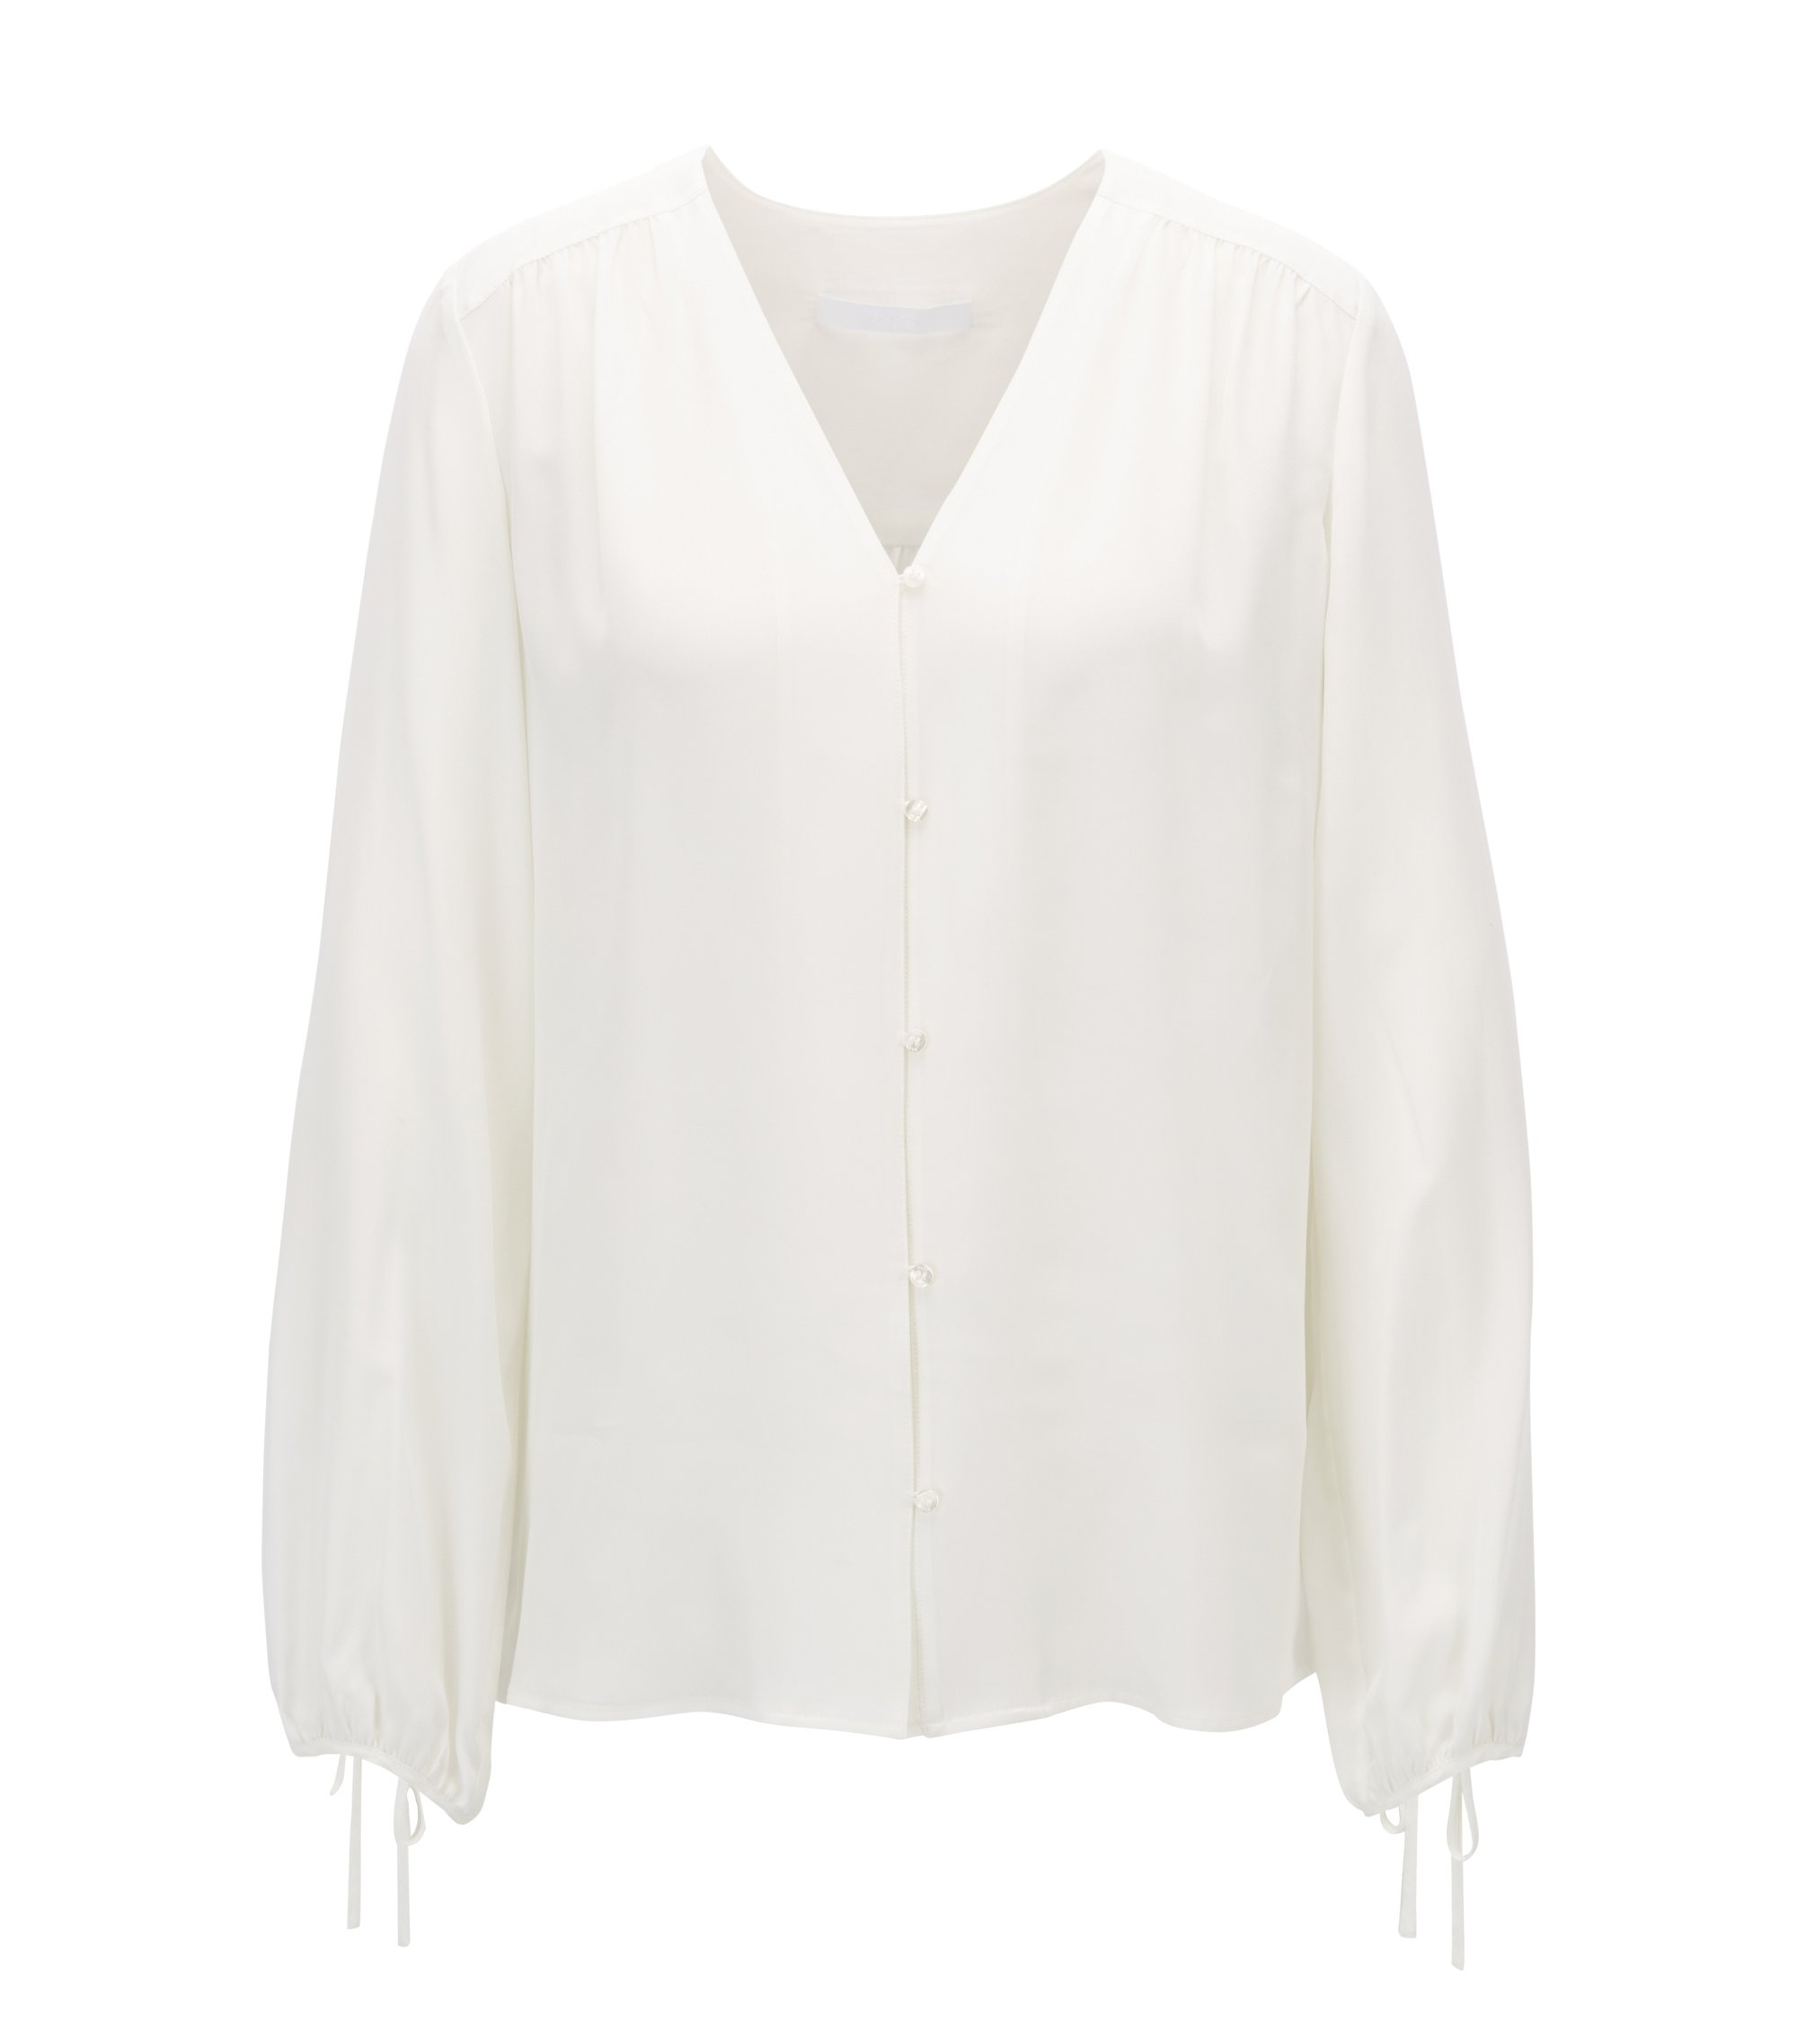 Blusa de sarga con mangas voluminosas, Natural